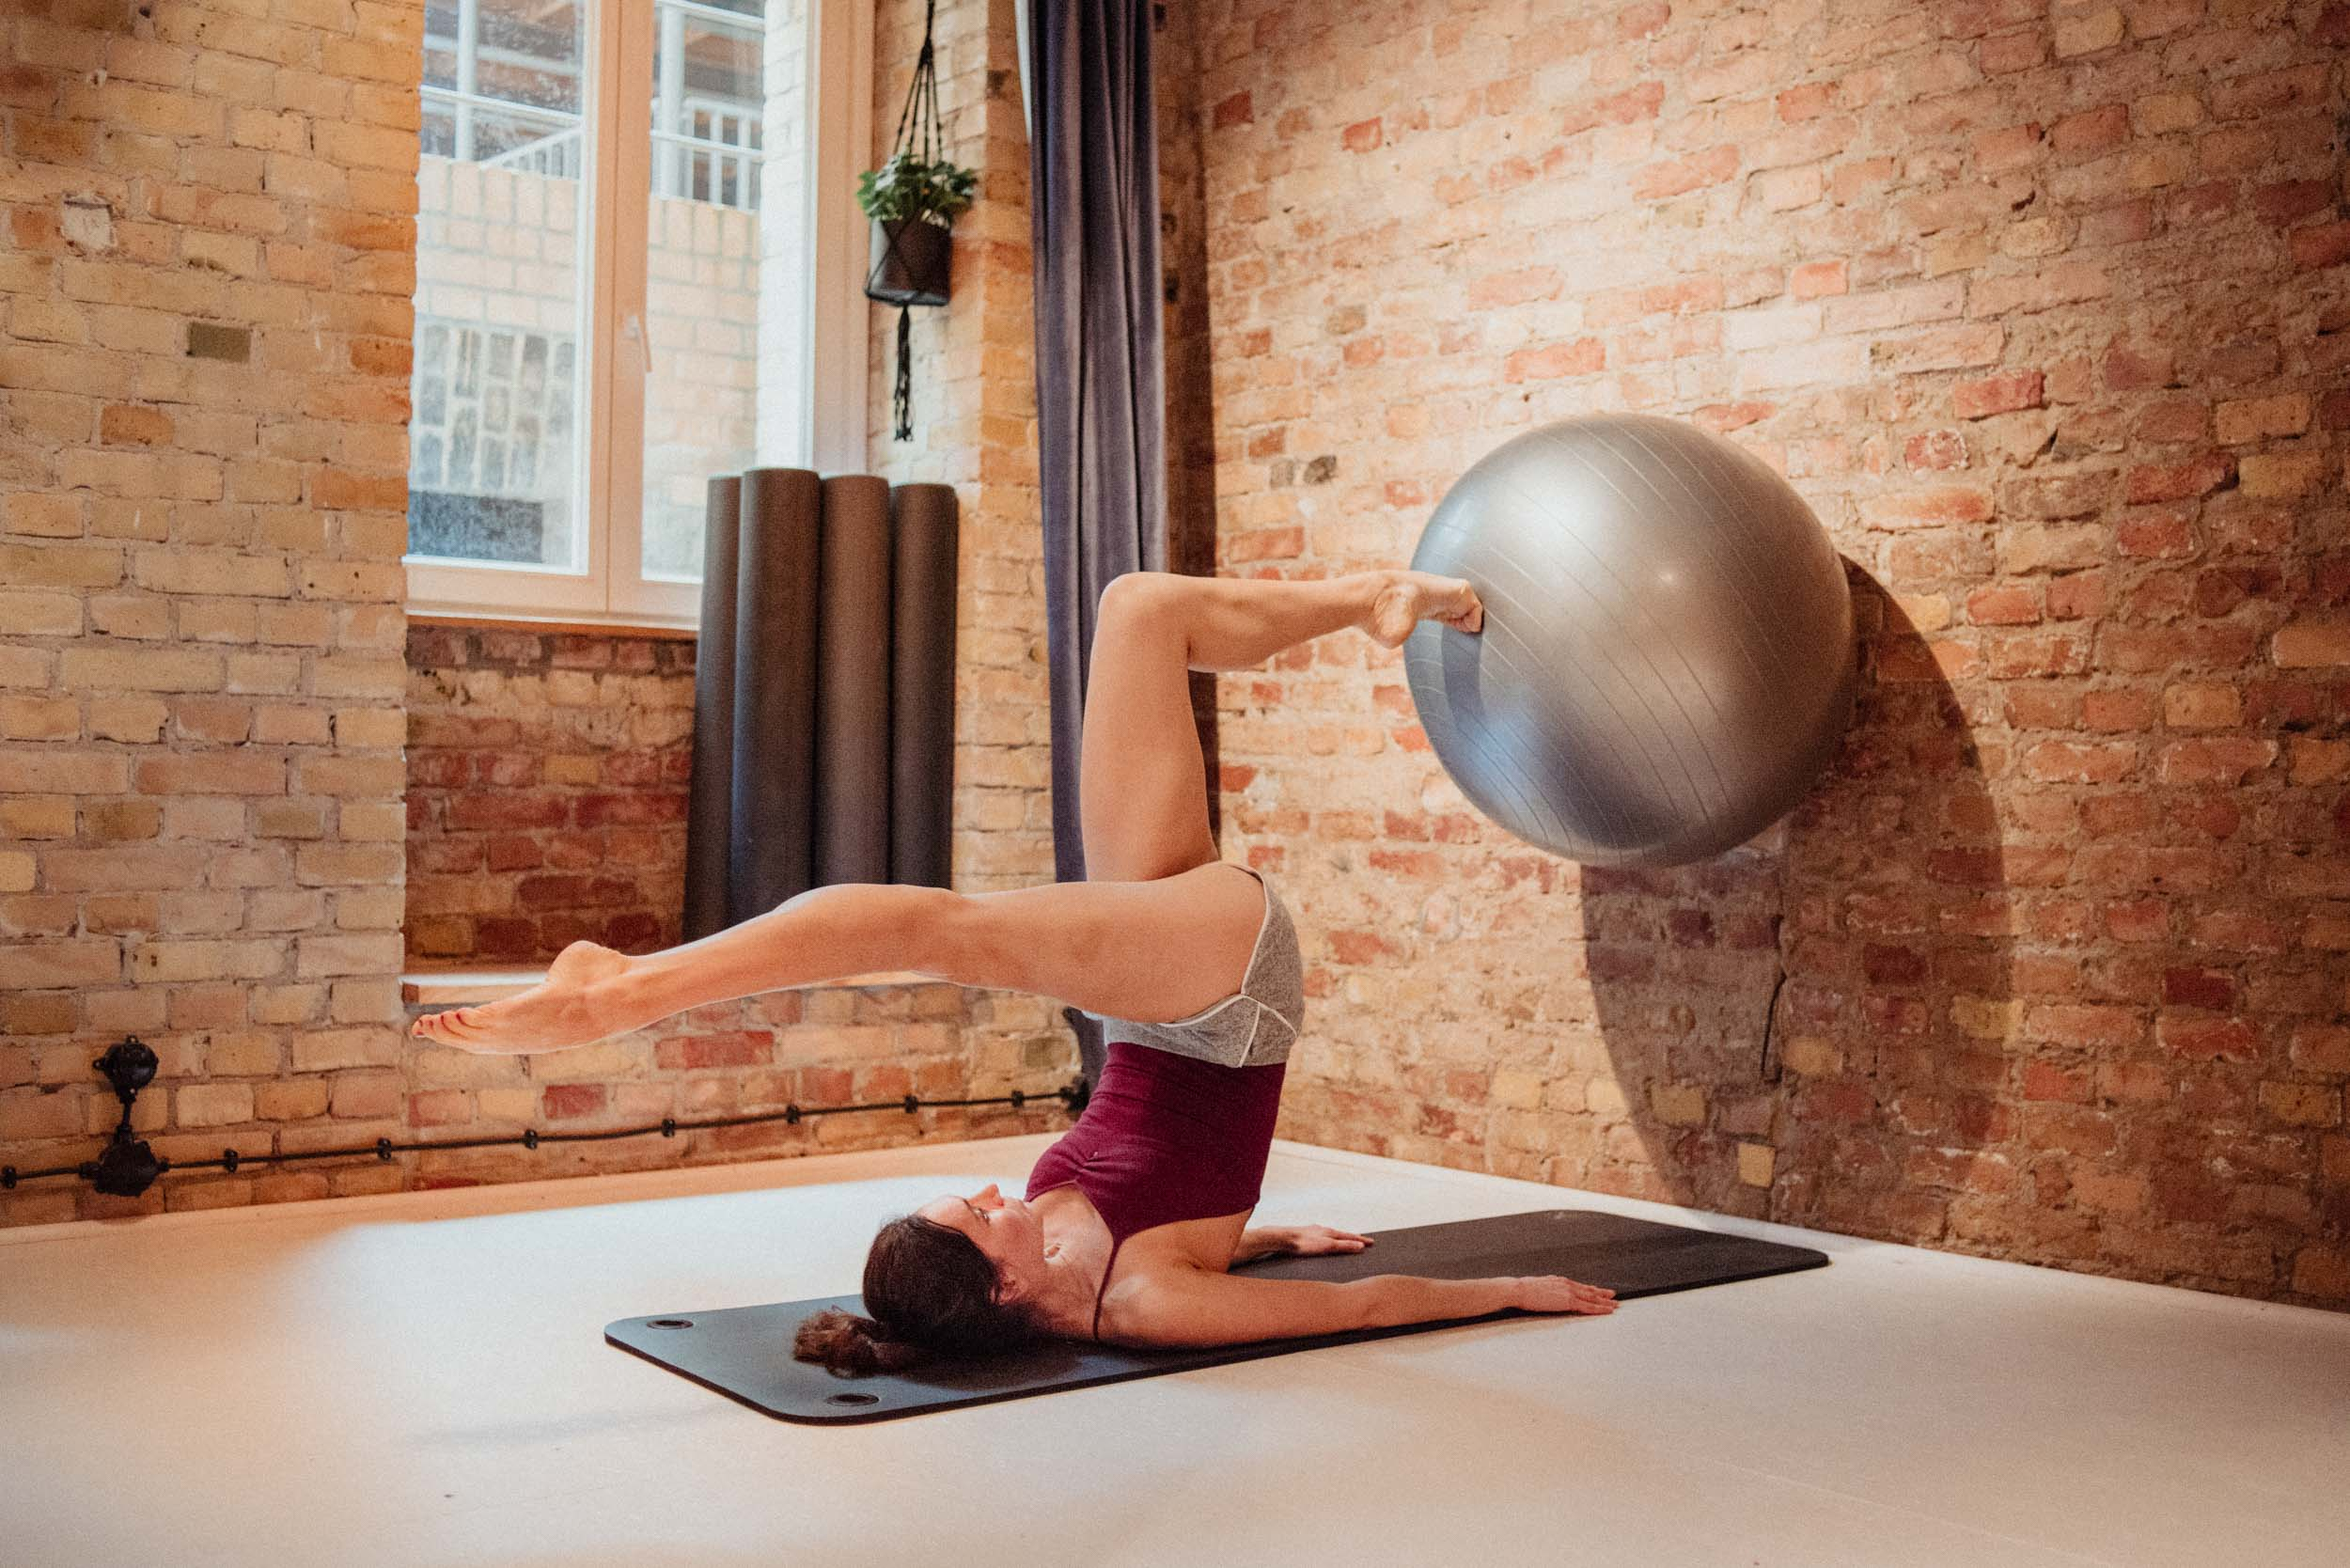 Daena from the Base Pilates Berlin doing a pilates move on a mat, pushing a gymnastic ball onto the wall with her foot.